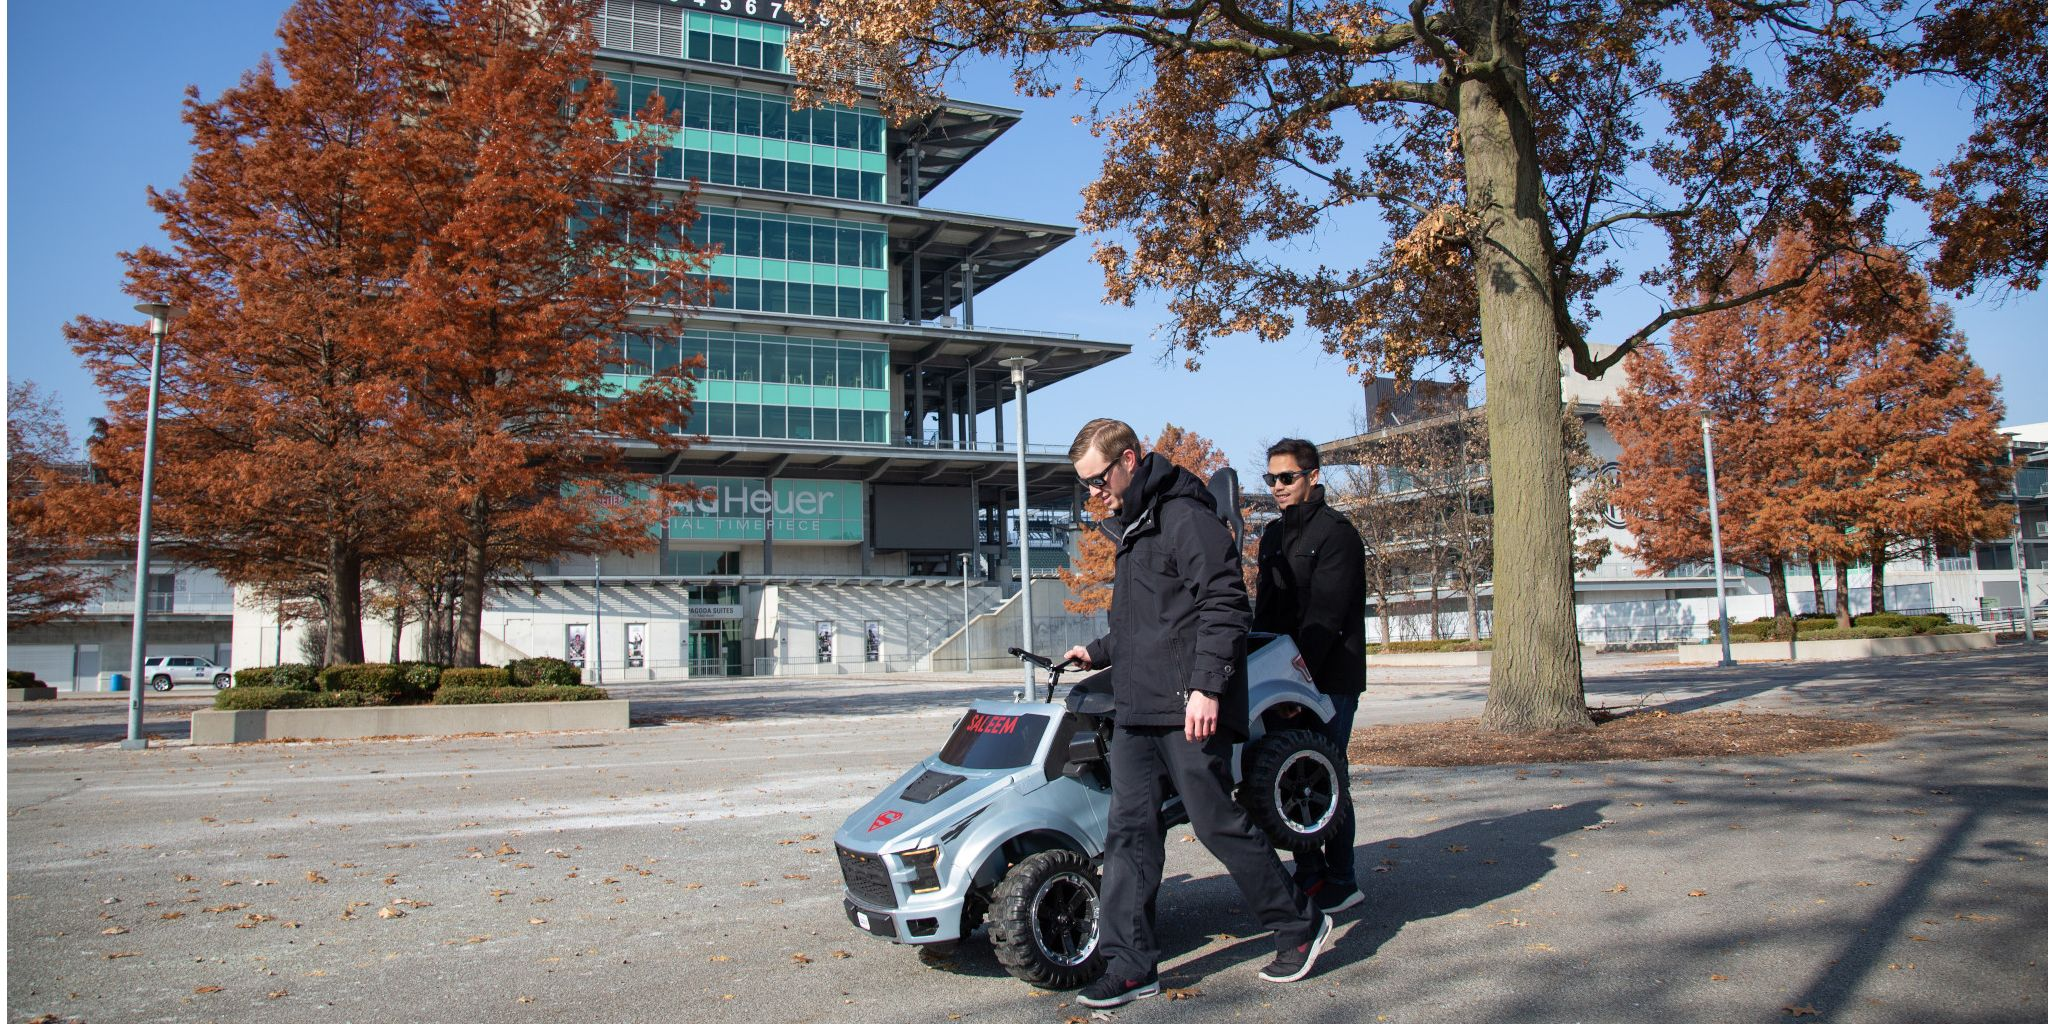 IUPUI students carry a silver car into the GoBabyGo event at the Indianapolis Motor Speedway